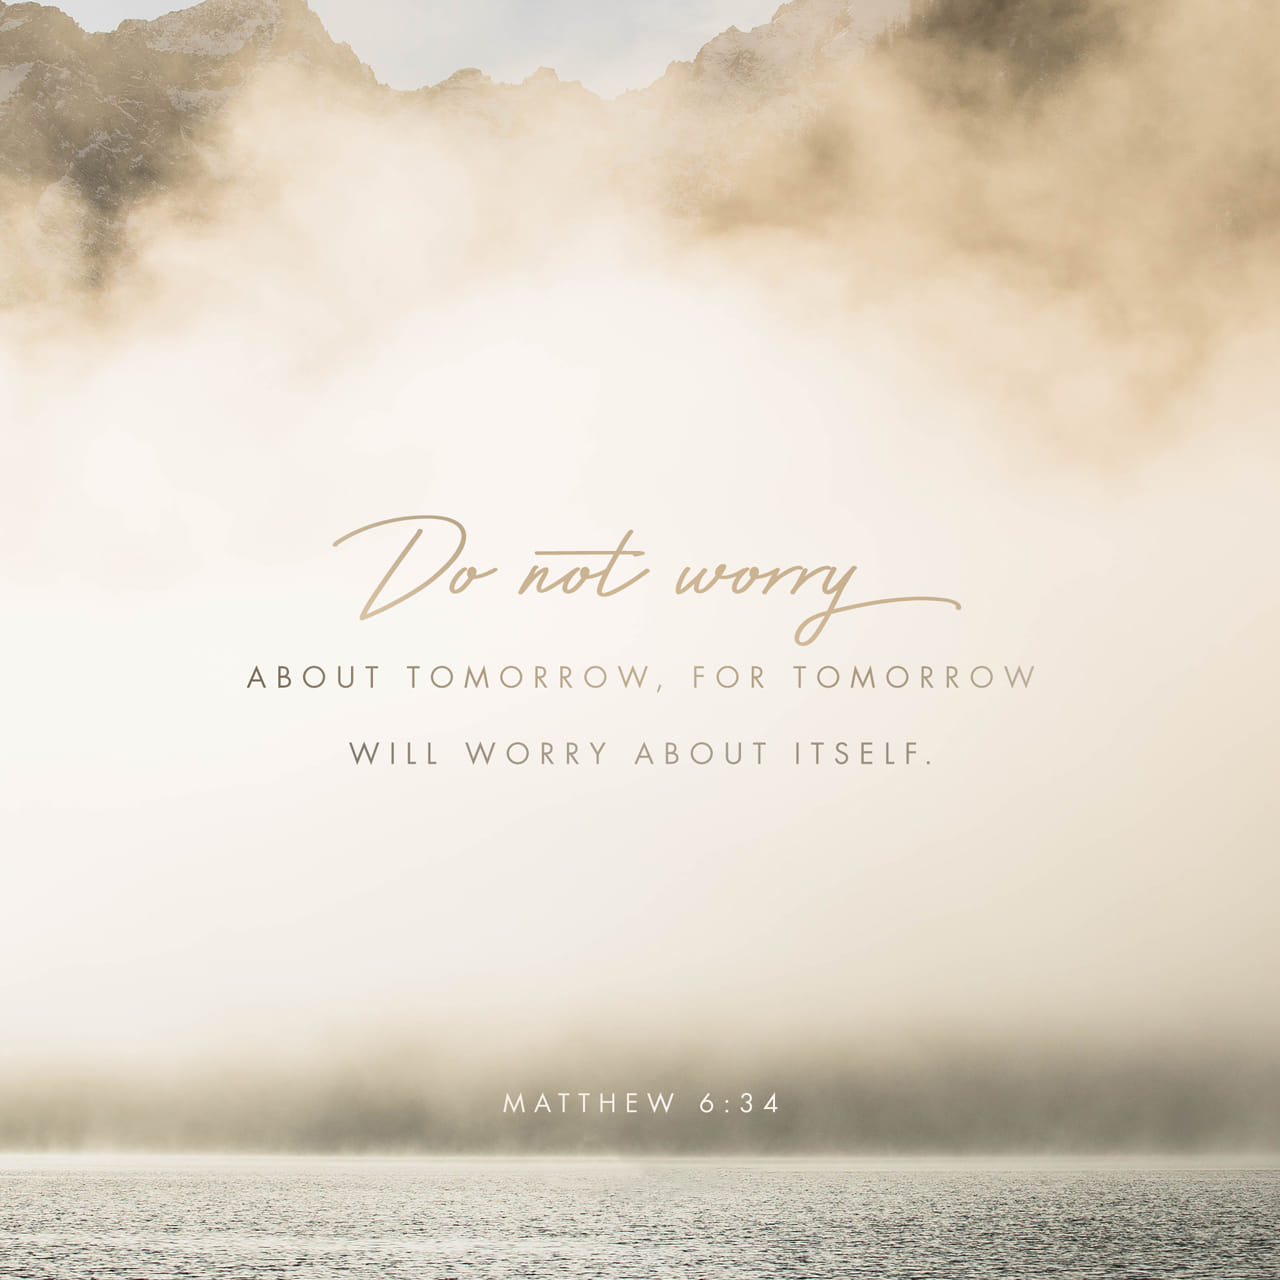 Matthew 6:34 Take therefore no thought for the morrow: for the morrow shall take thought for the things of itself. Sufficient unto the day is the evil thereof. | King James Version (KJV)